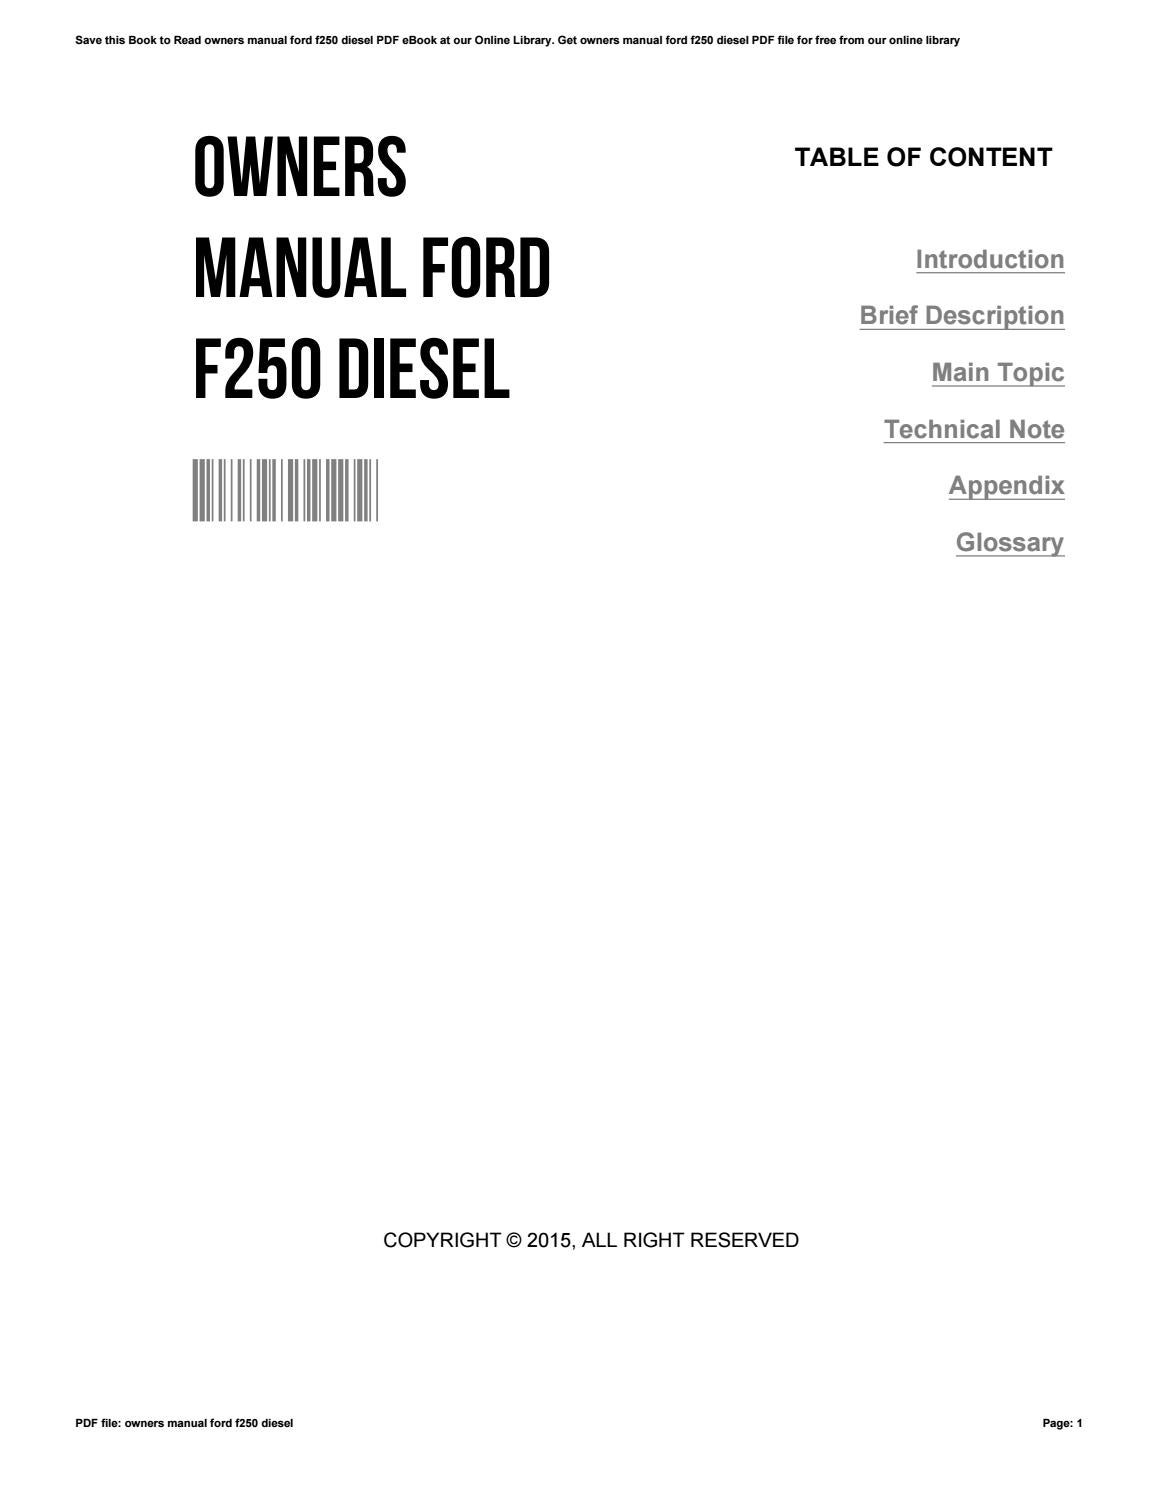 Owners manual ford f250 diesel by AdrienneNishimura2369